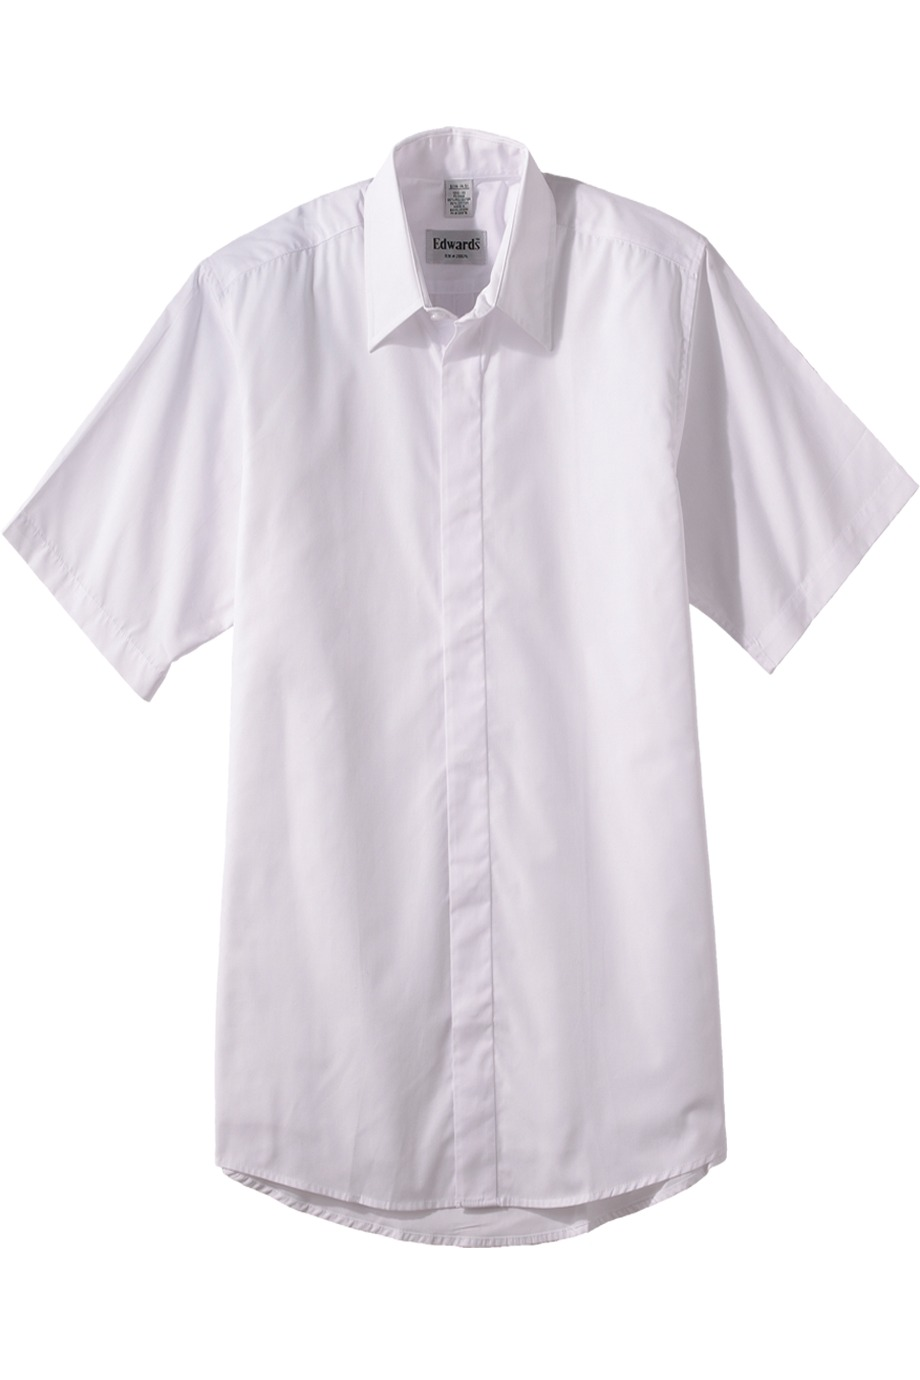 Edwards Garment 1240 - Men's Short Sleeve Cafe Shirt